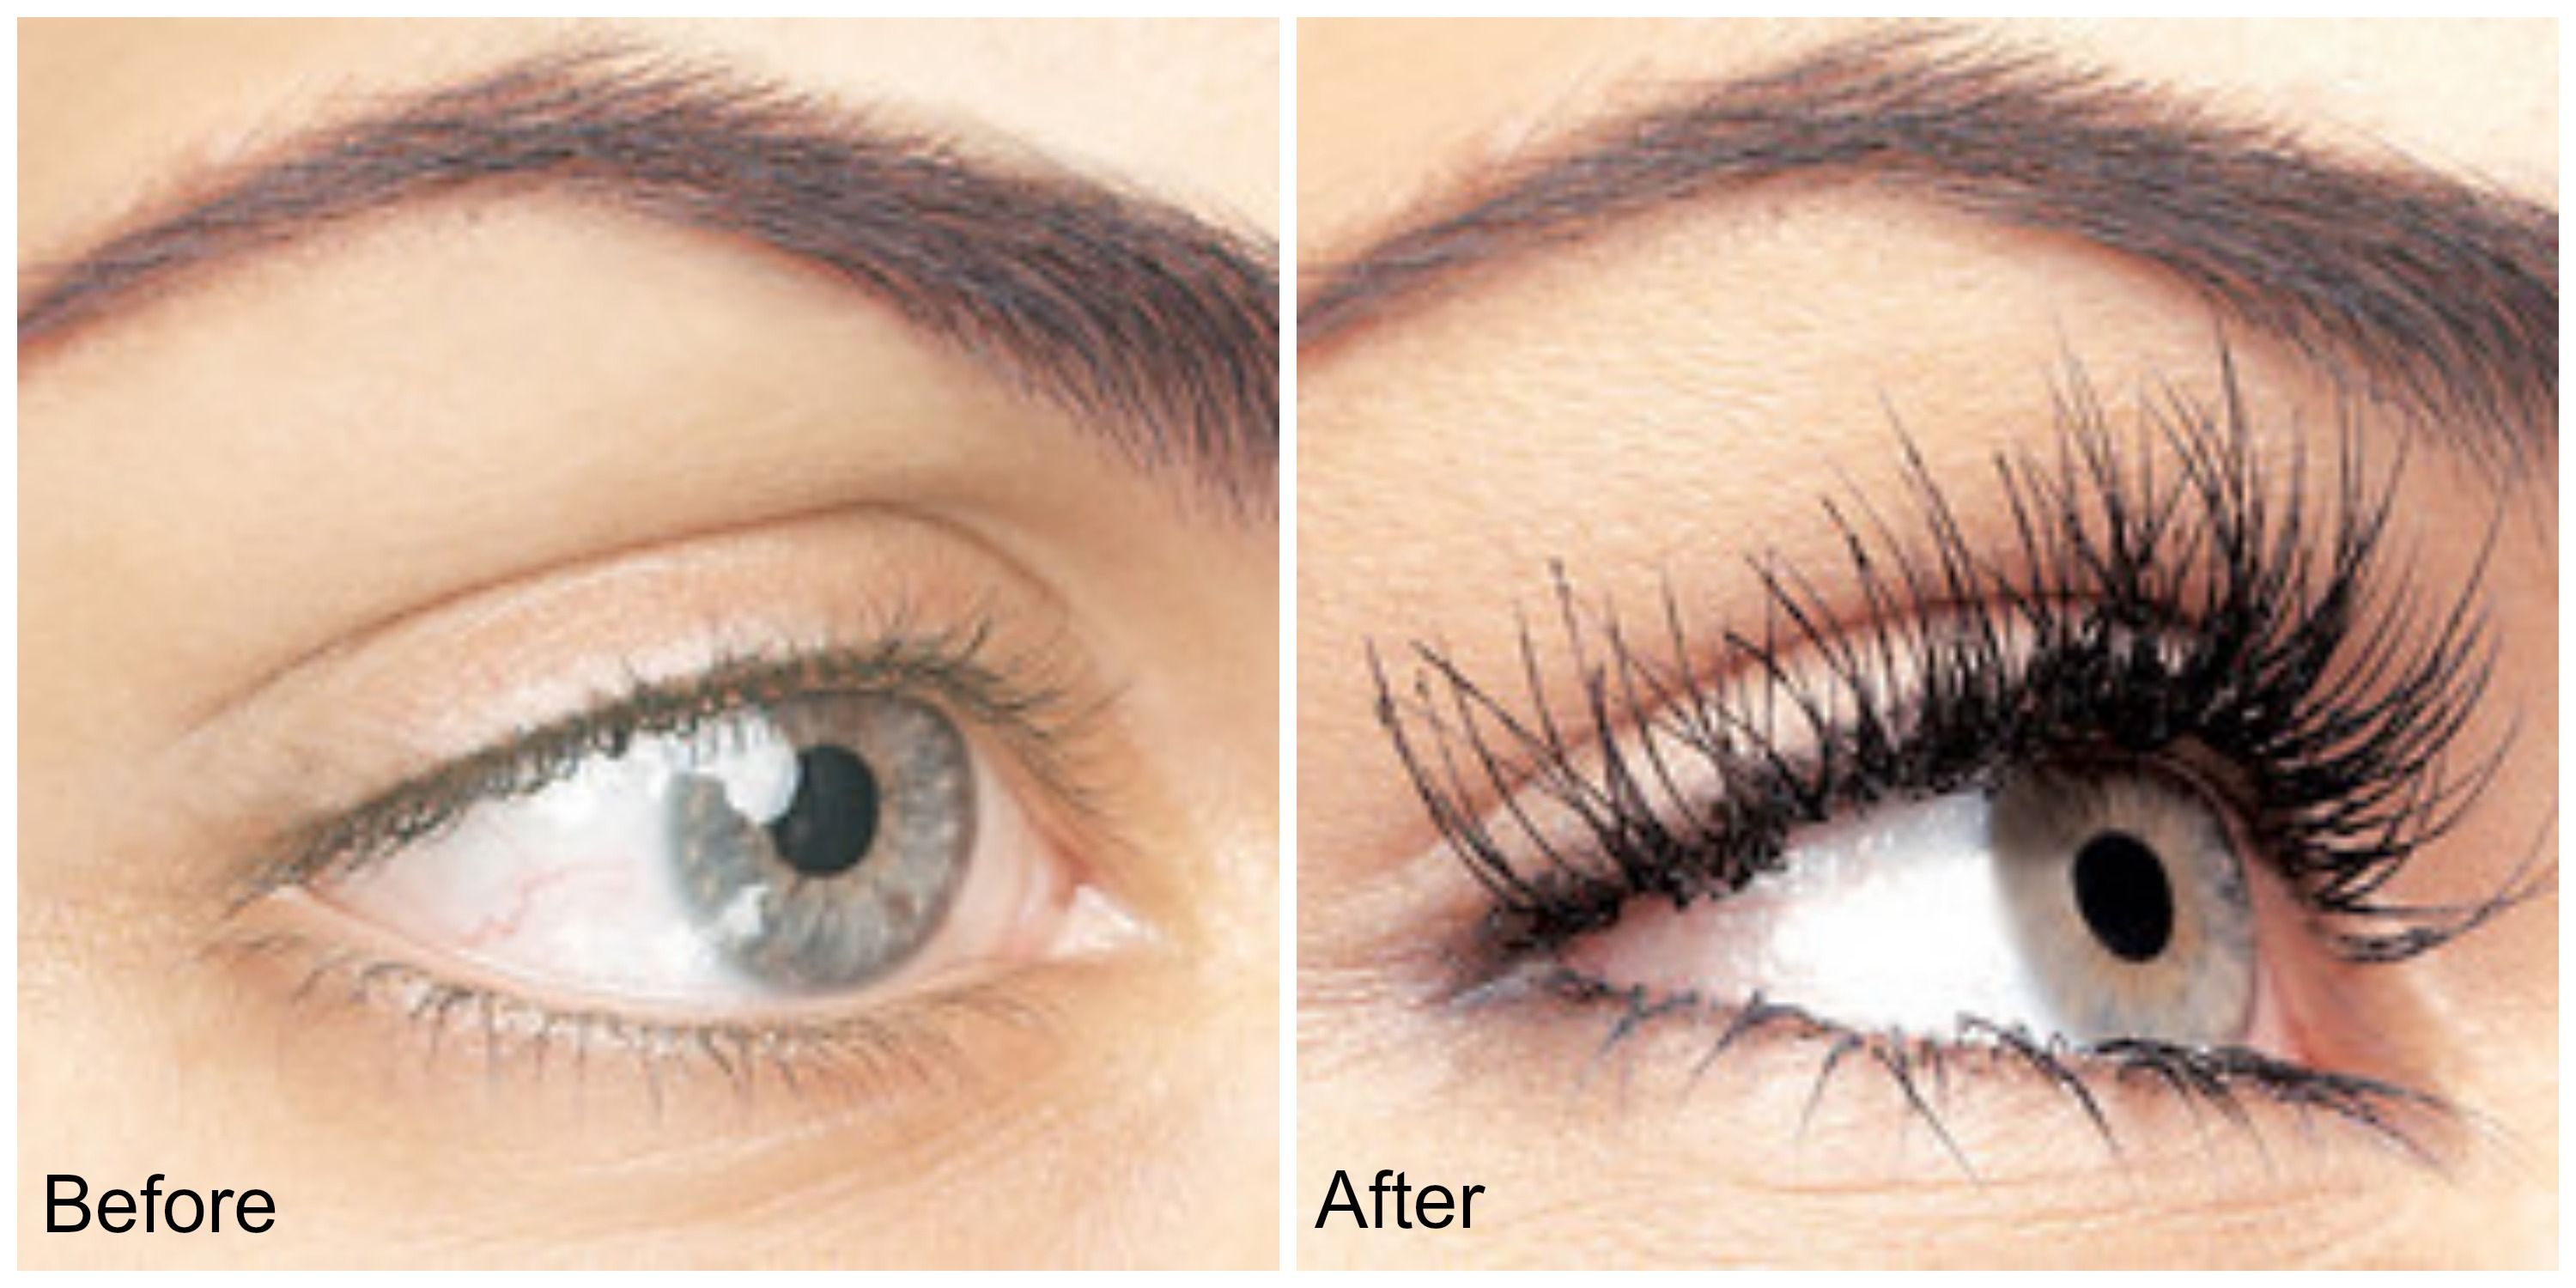 How do you care for lash extensions